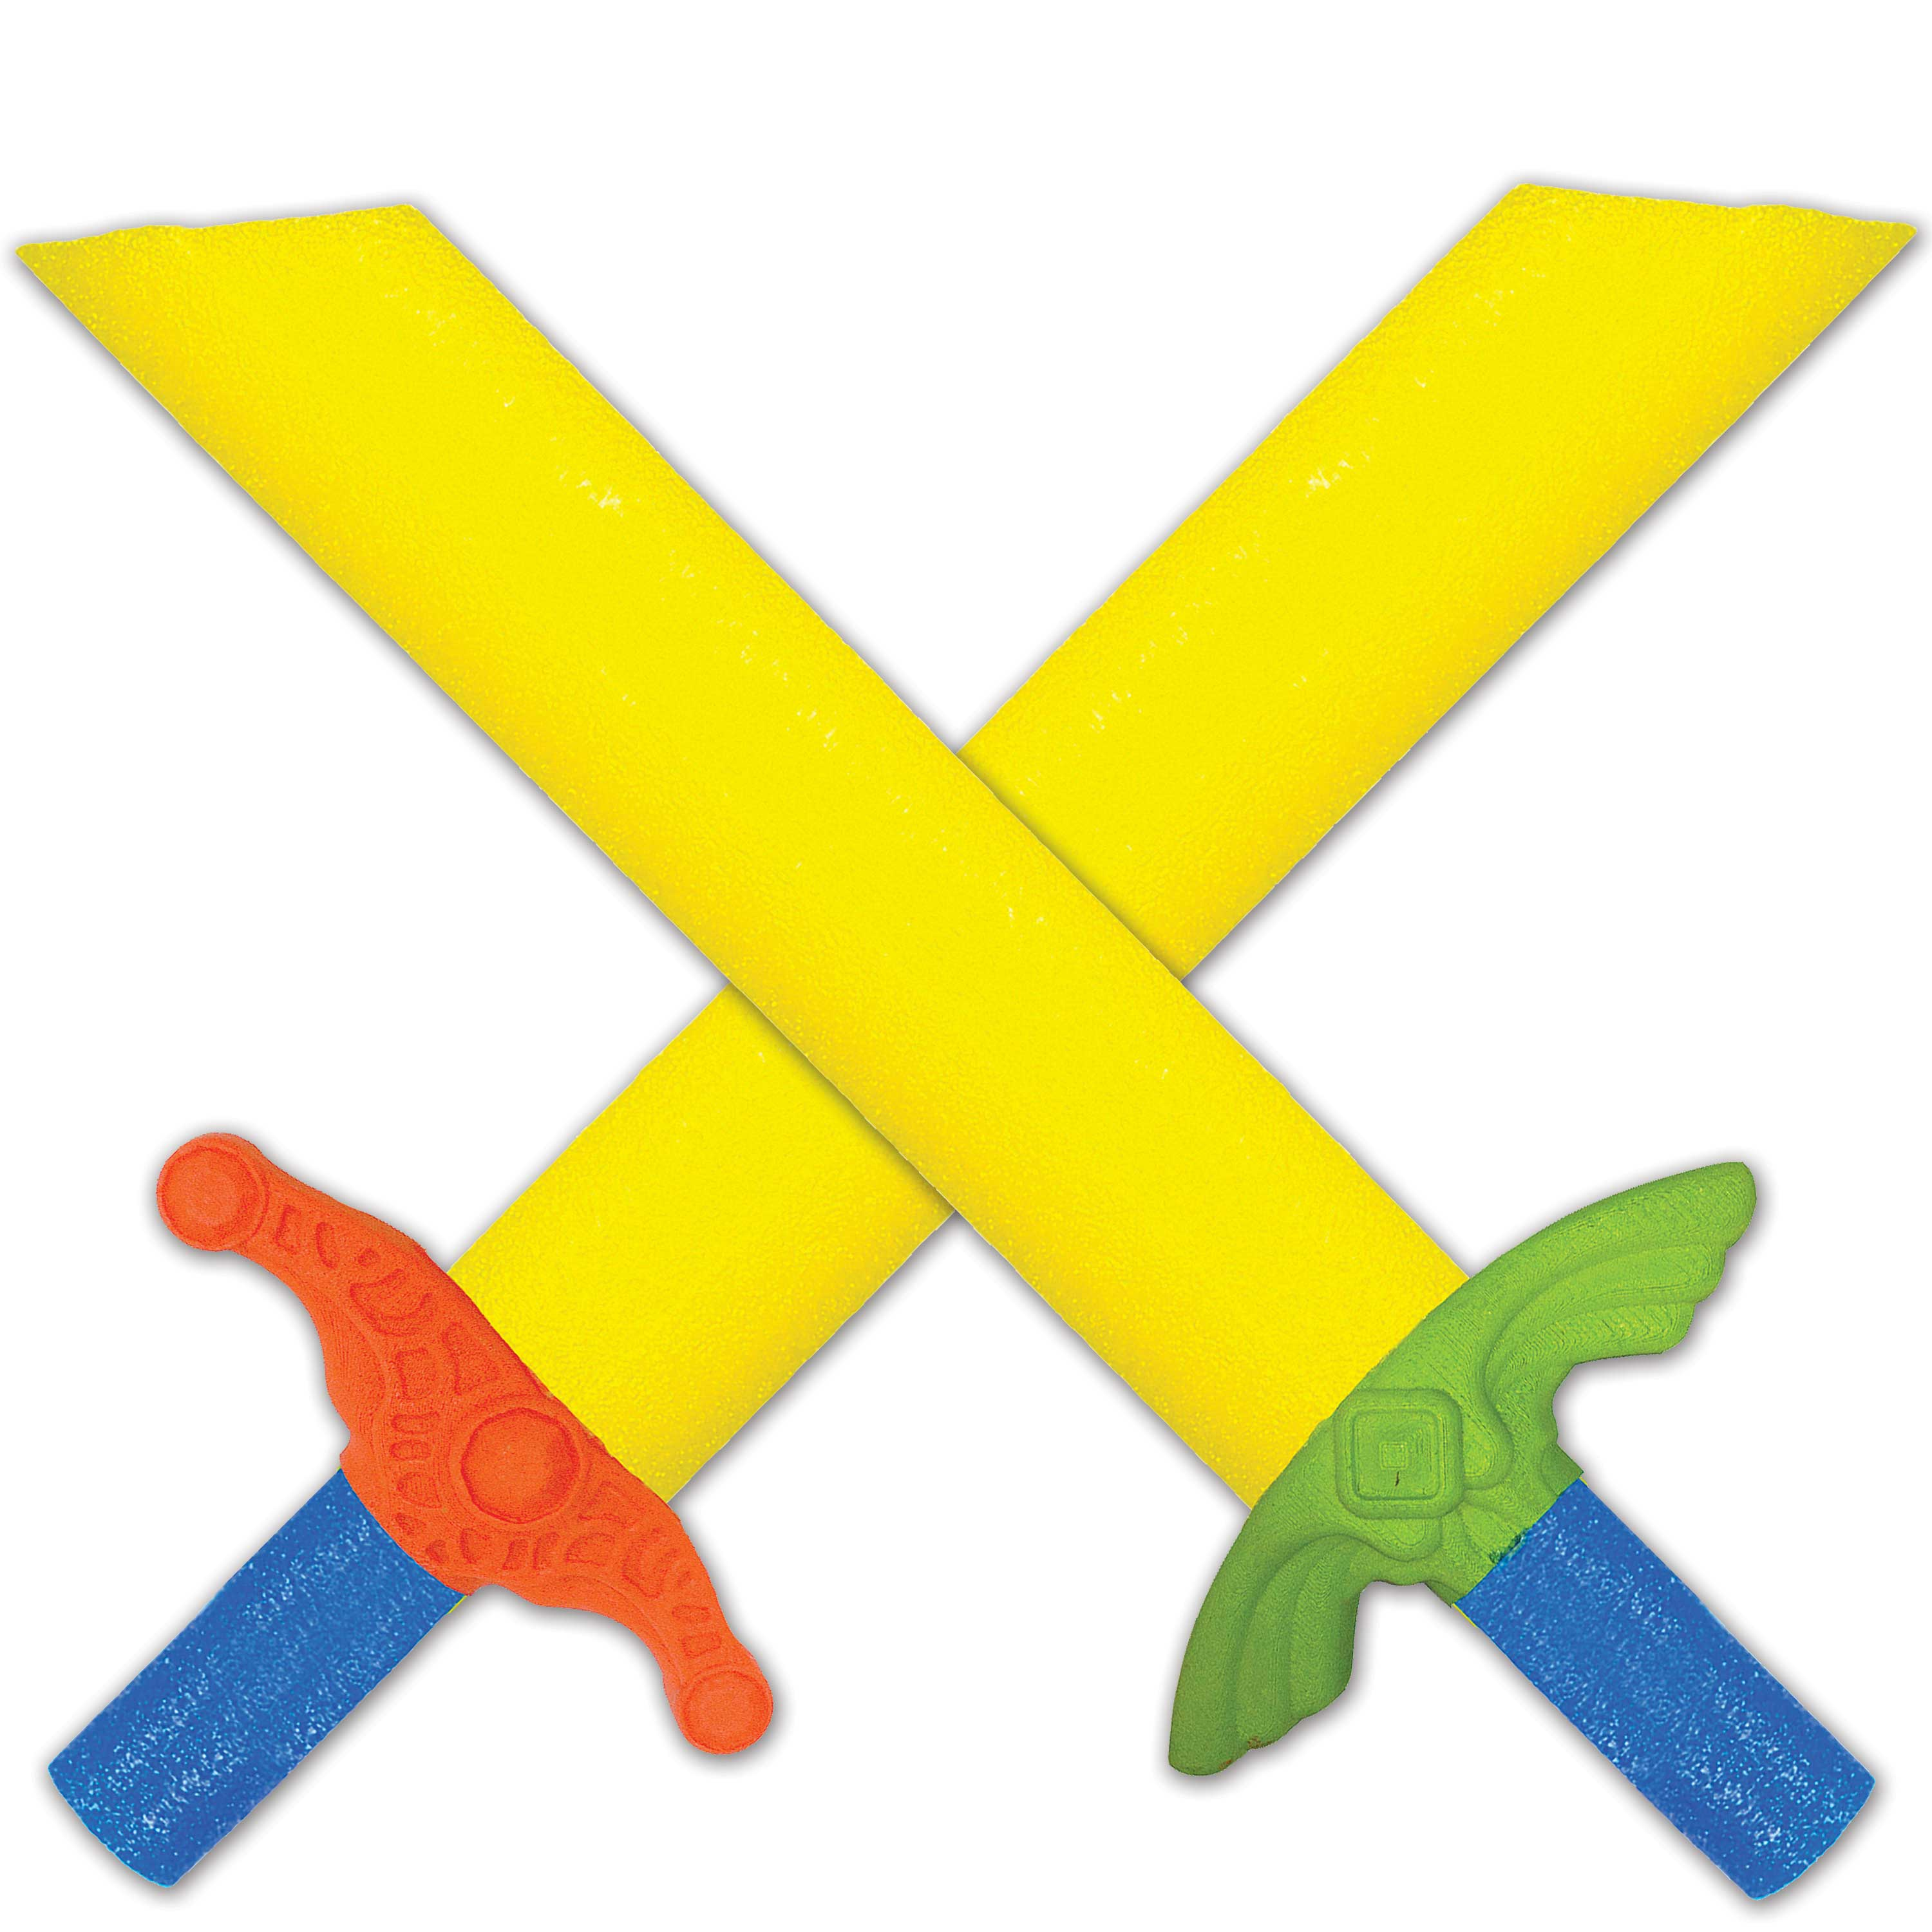 Swimways Noodle Knights Toy Pool Noodle Sword